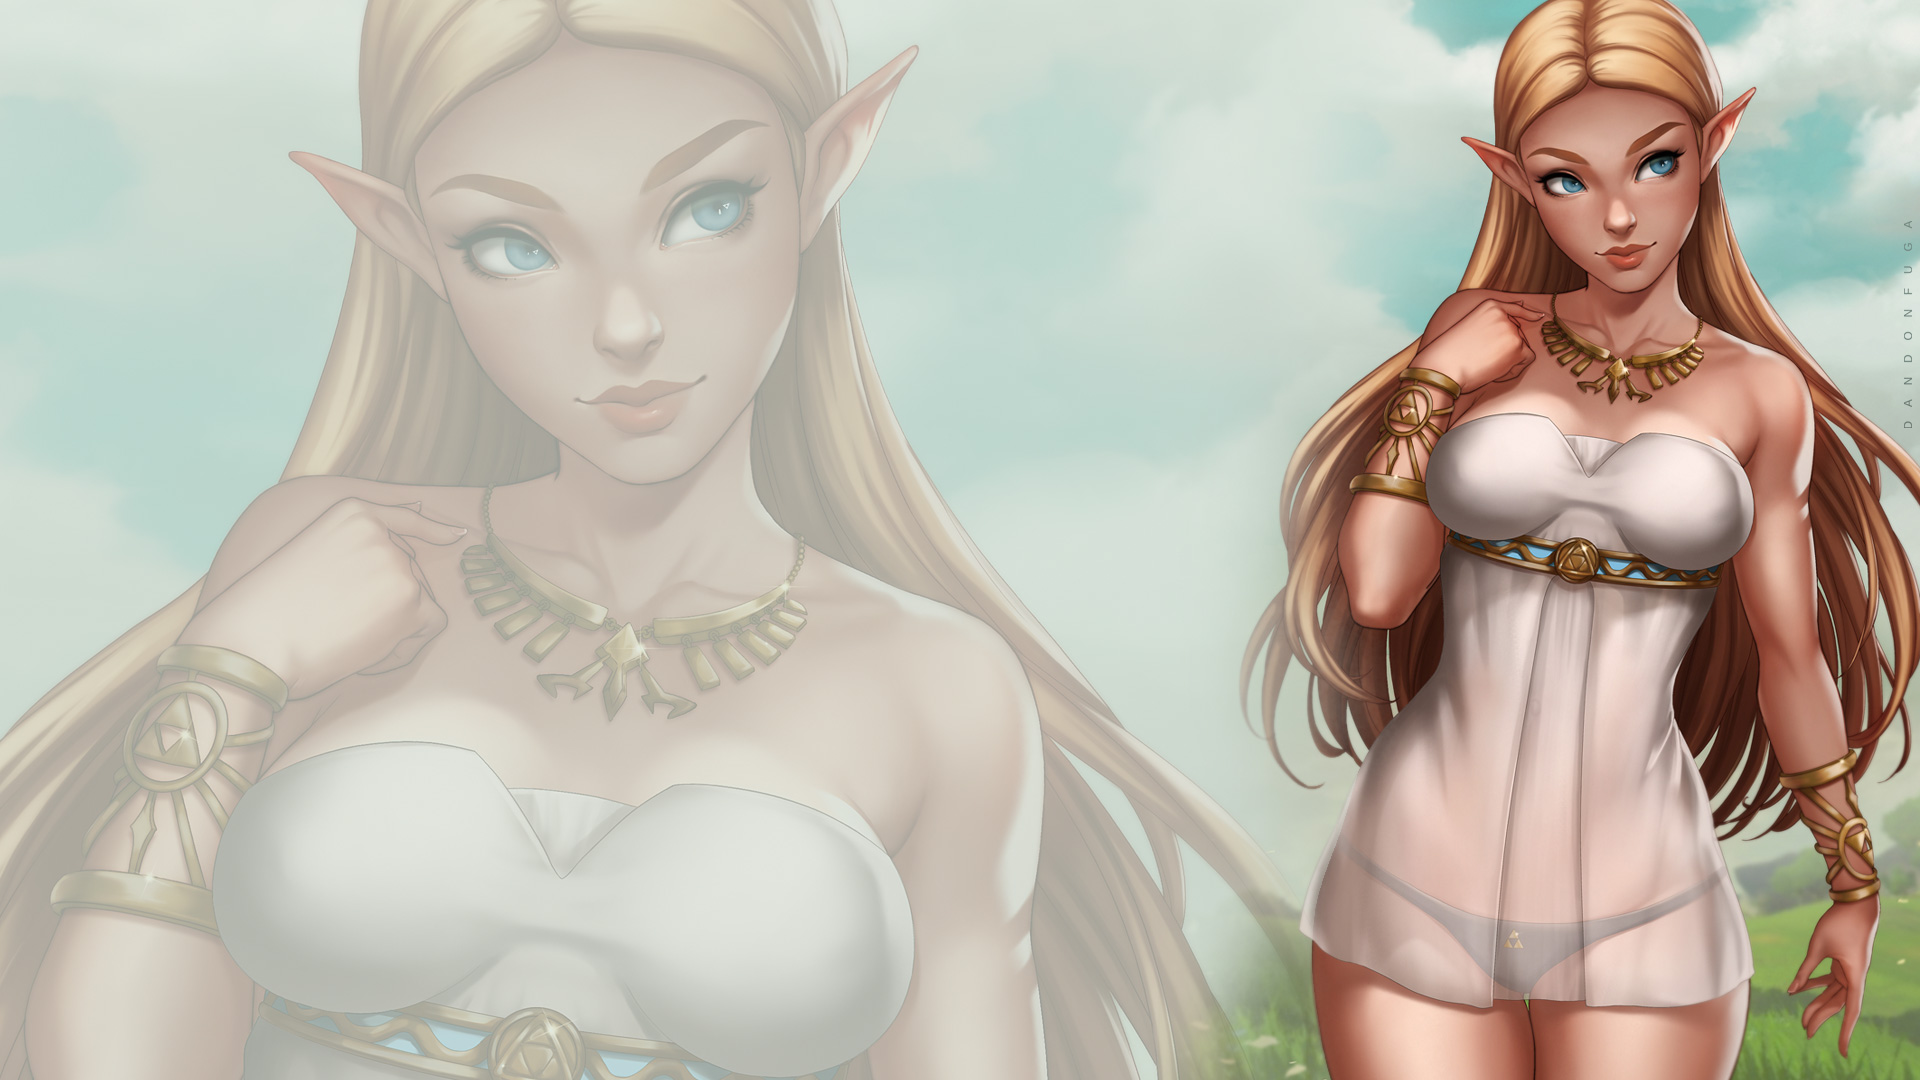 General 1920x1080 dandon fuga The Legend of Zelda Princess Zelda Zelda blue eyes Triforce